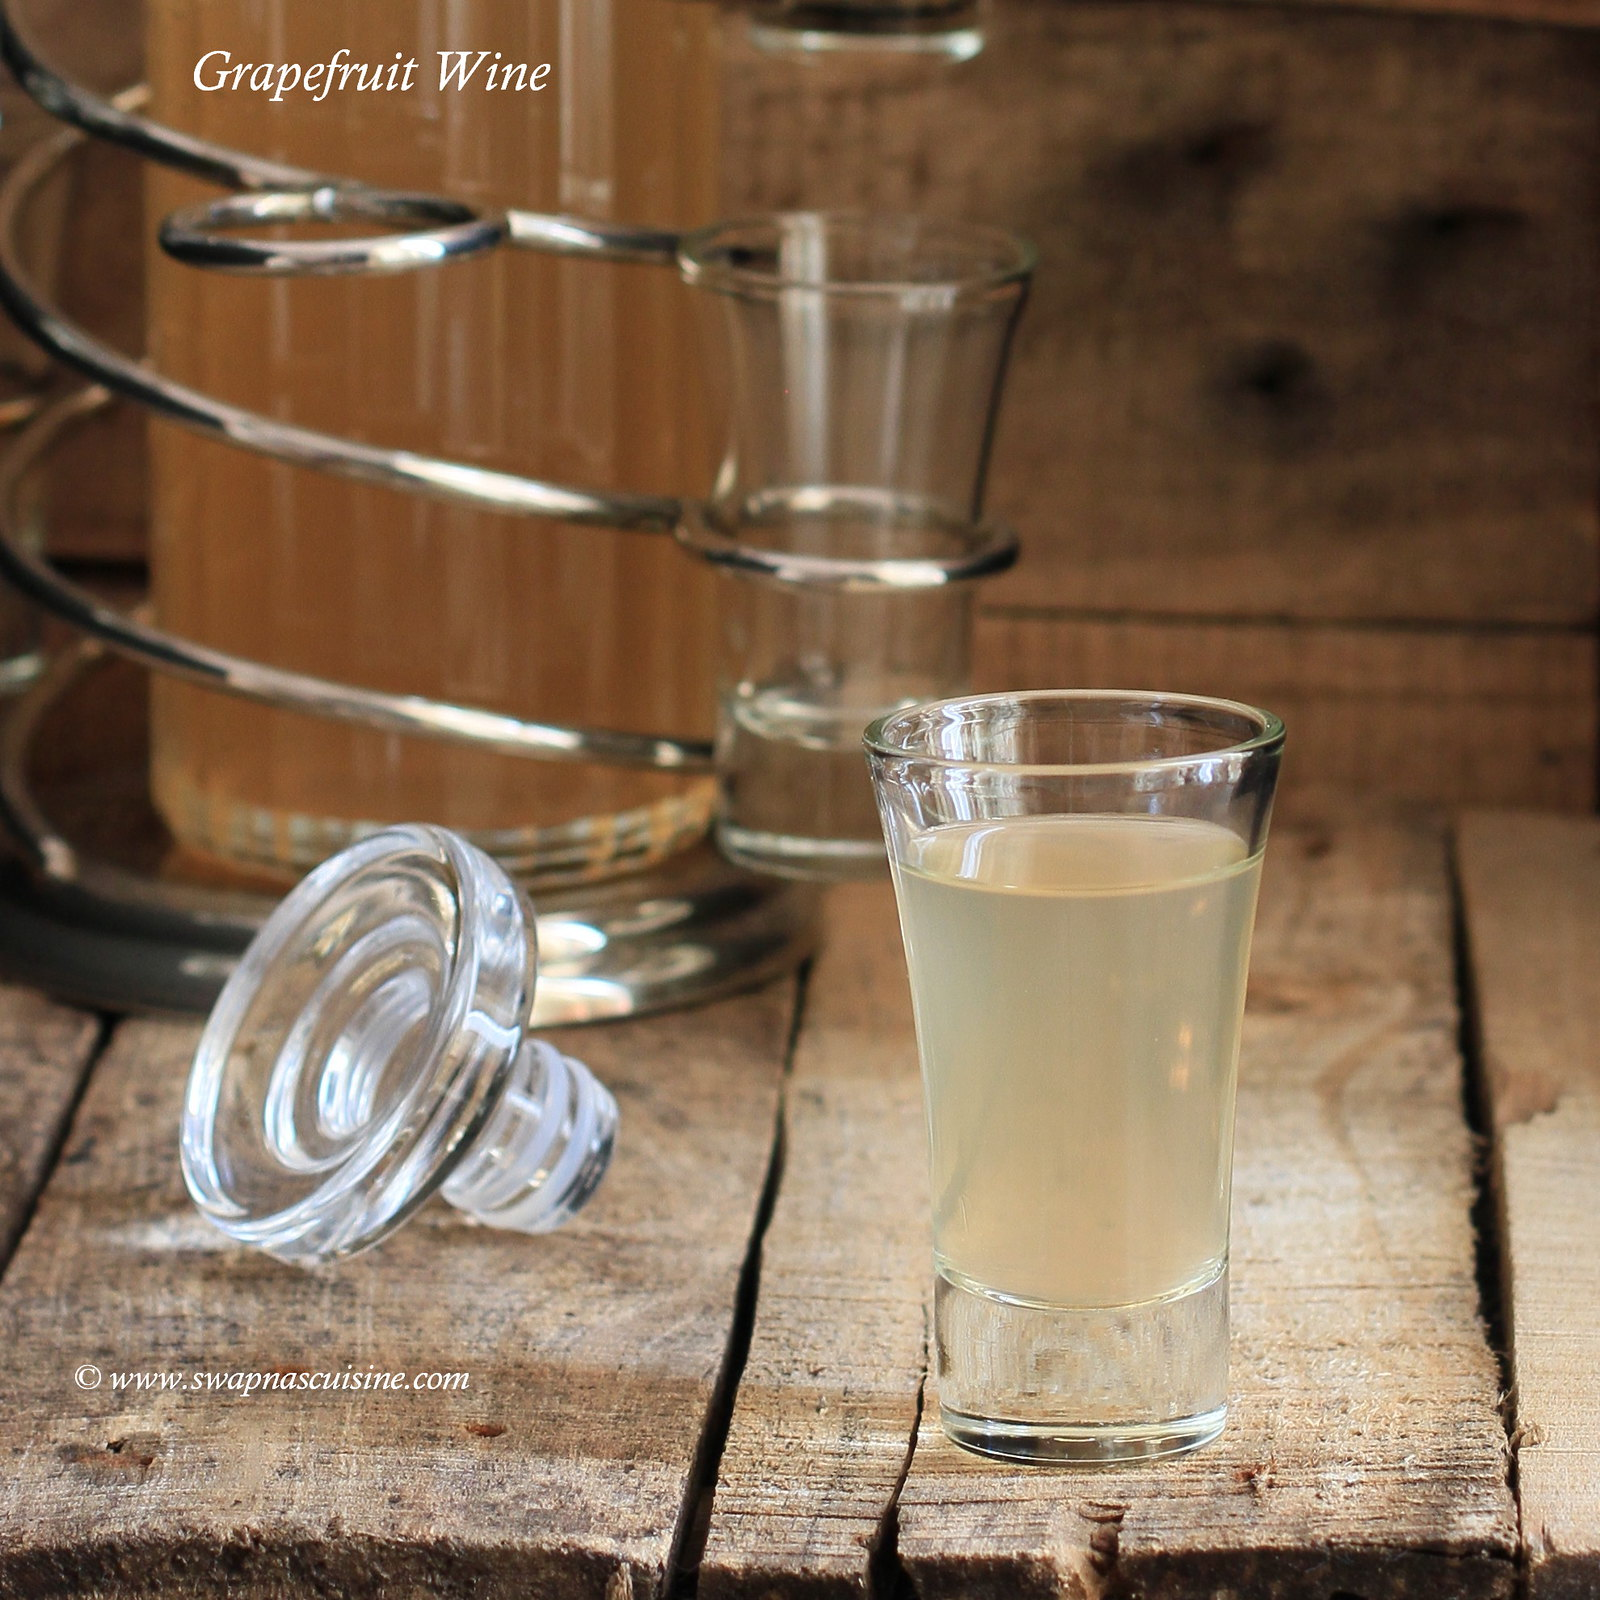 How to make Grapefruit Wine at home